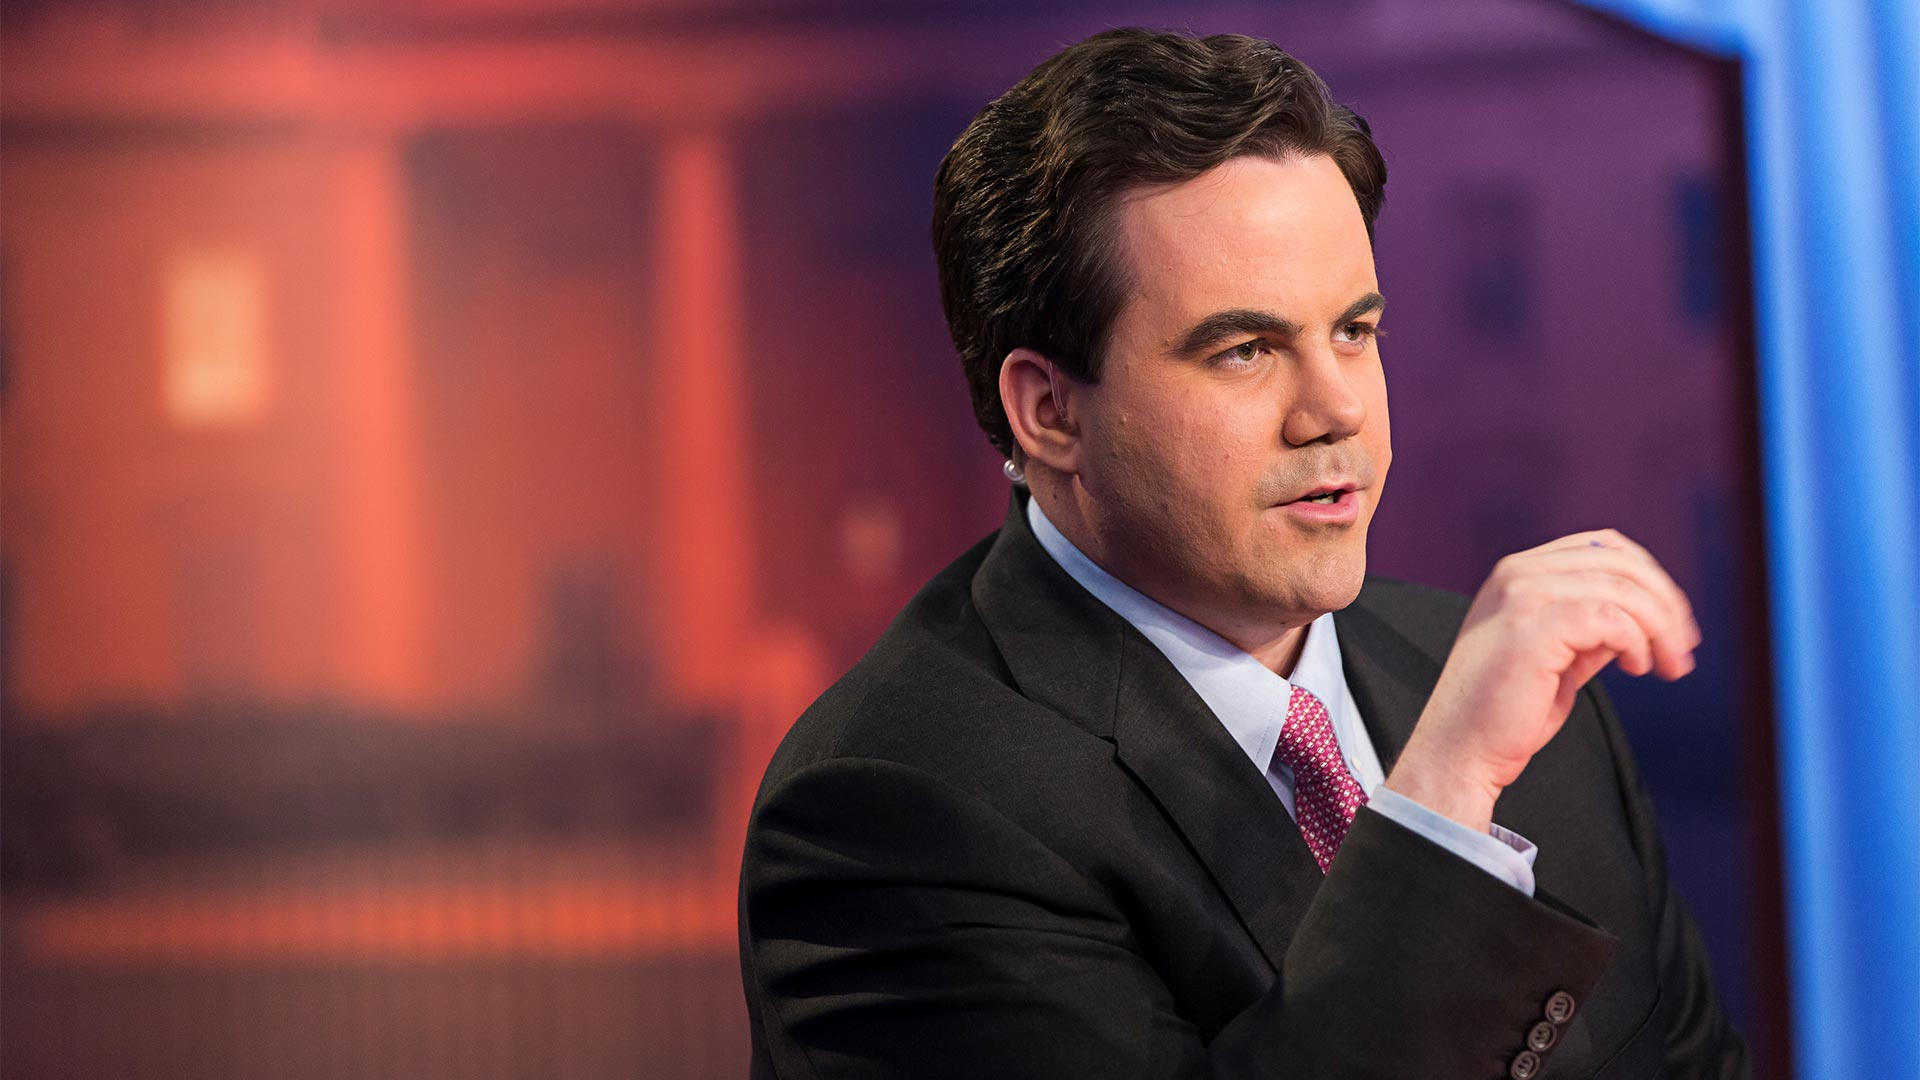 Robert Costa, Moderator of Washington Week, on the set of the weekly news analysis series that airs Fridays at 8:00 p.m. on PBS 6.